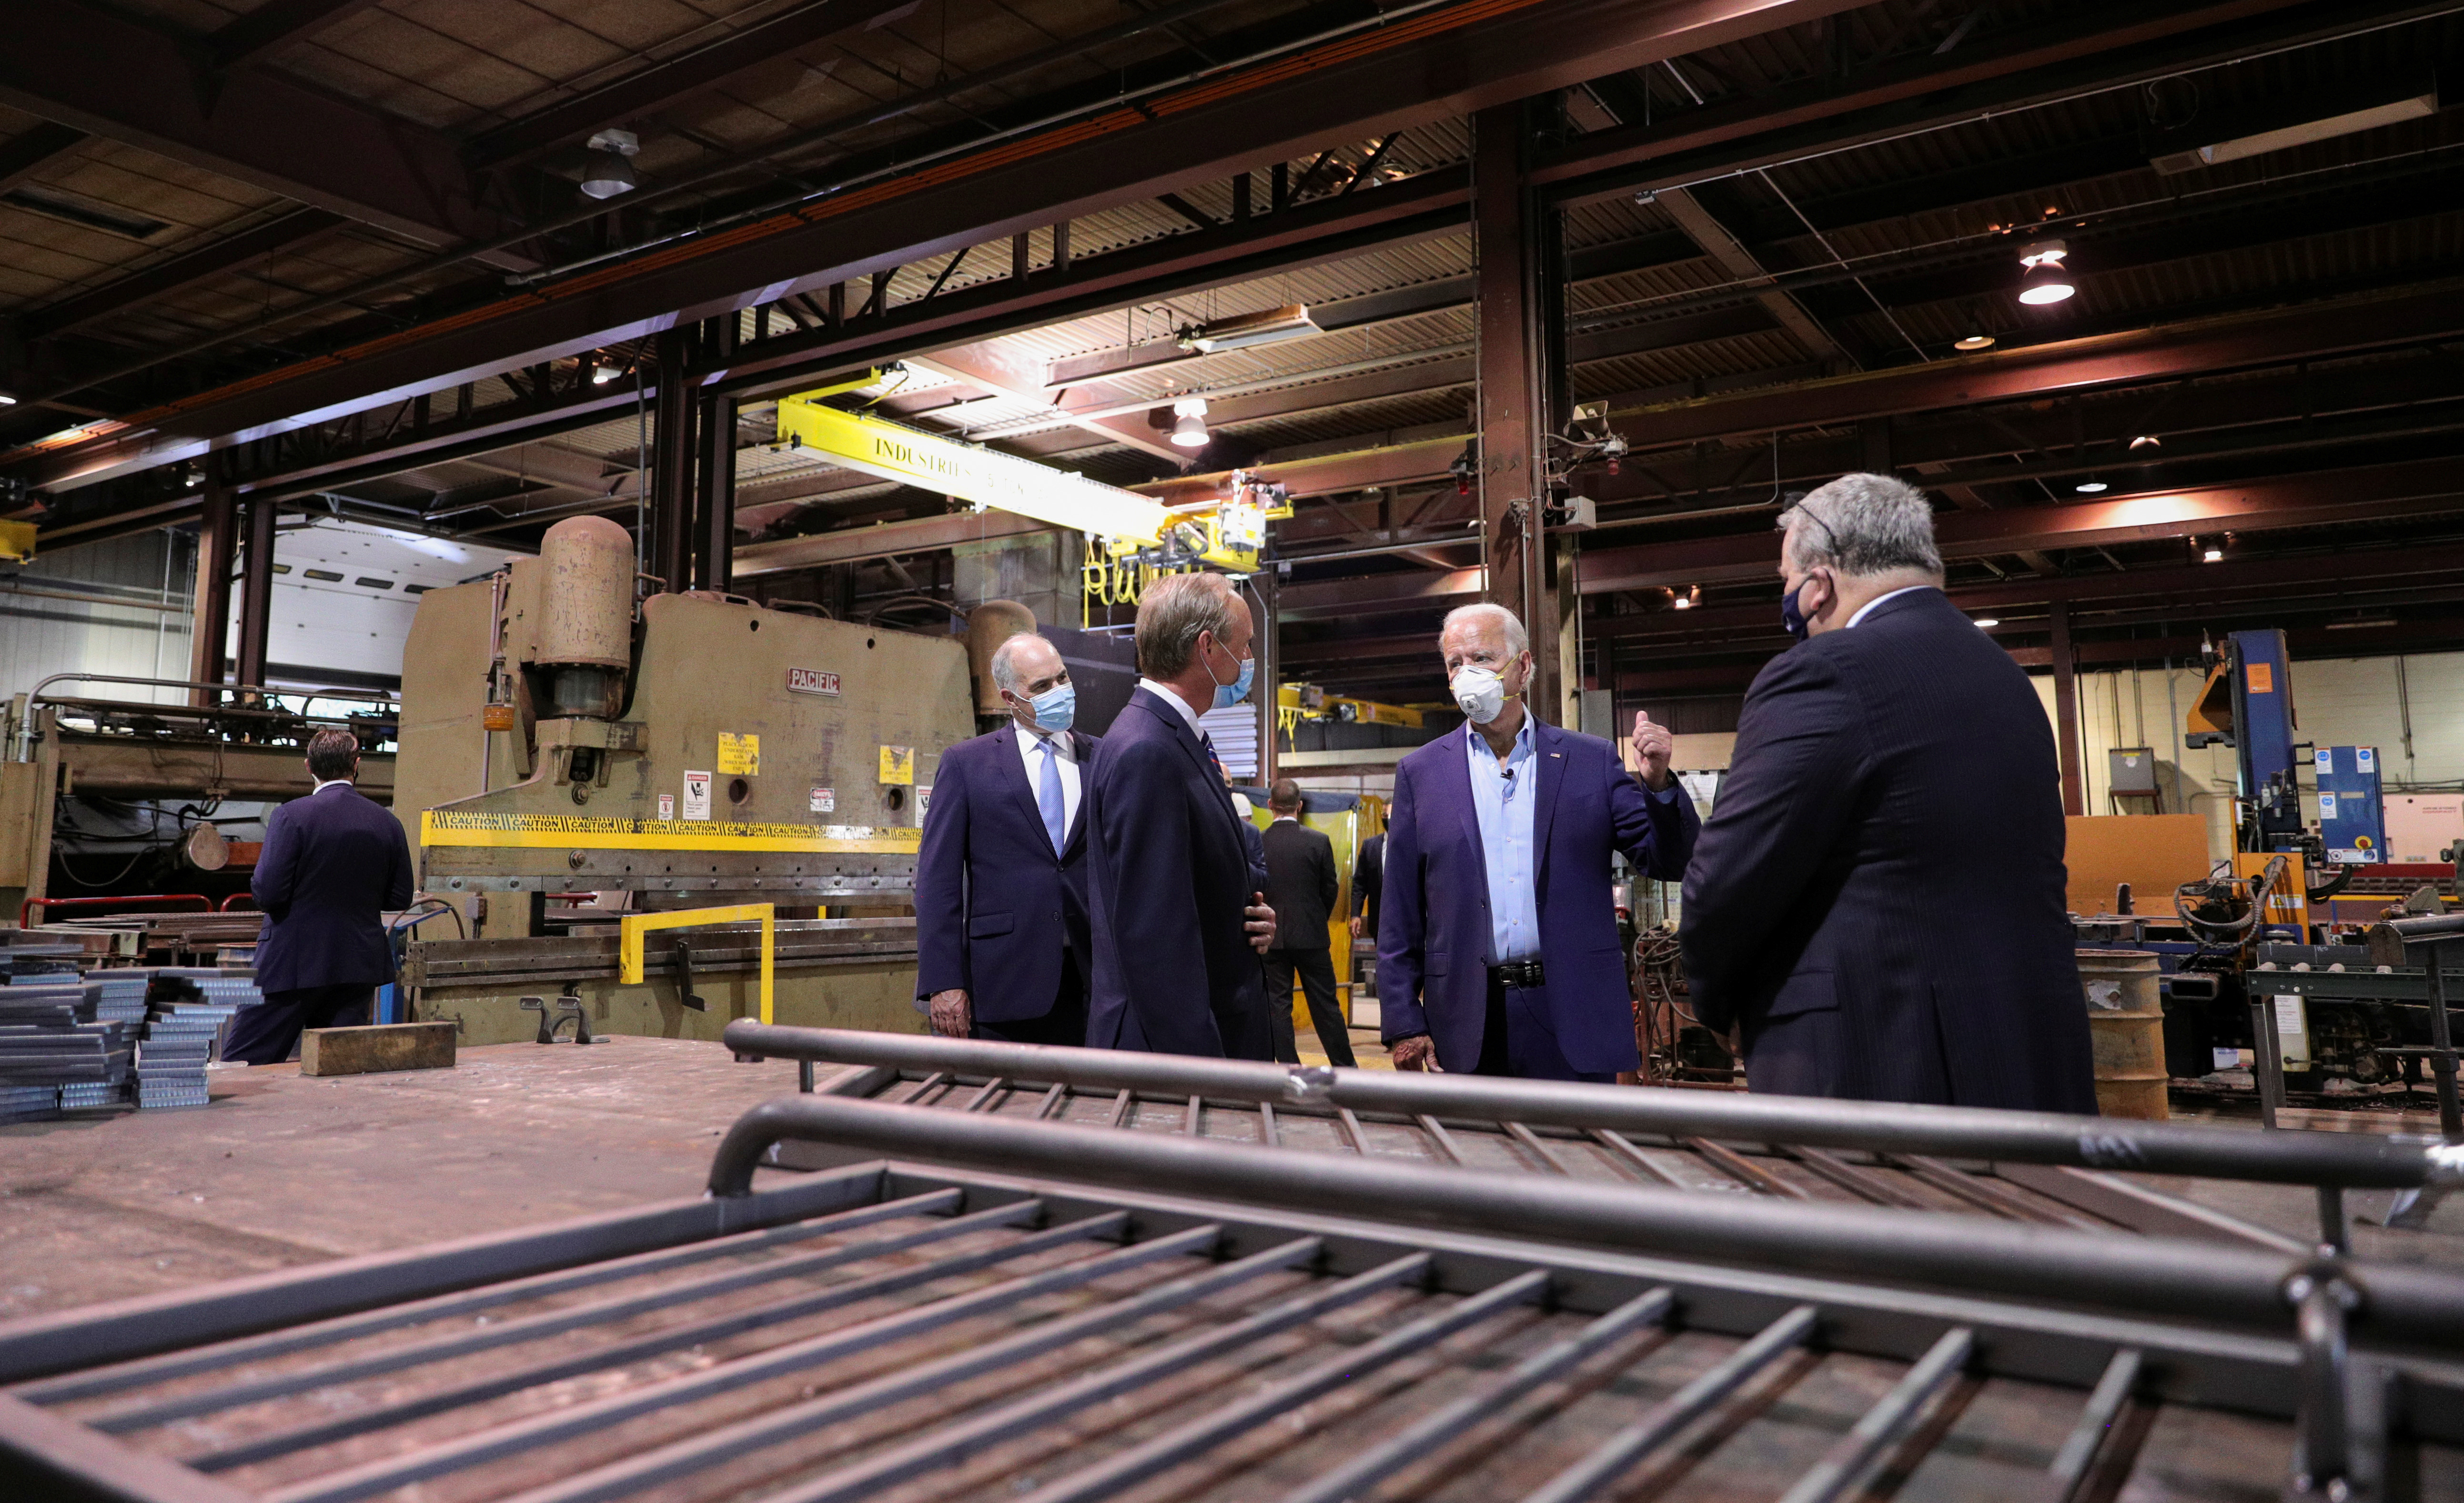 Joe Biden tours a Pennsylvania metal works plant during his electoral campaign in 2020.